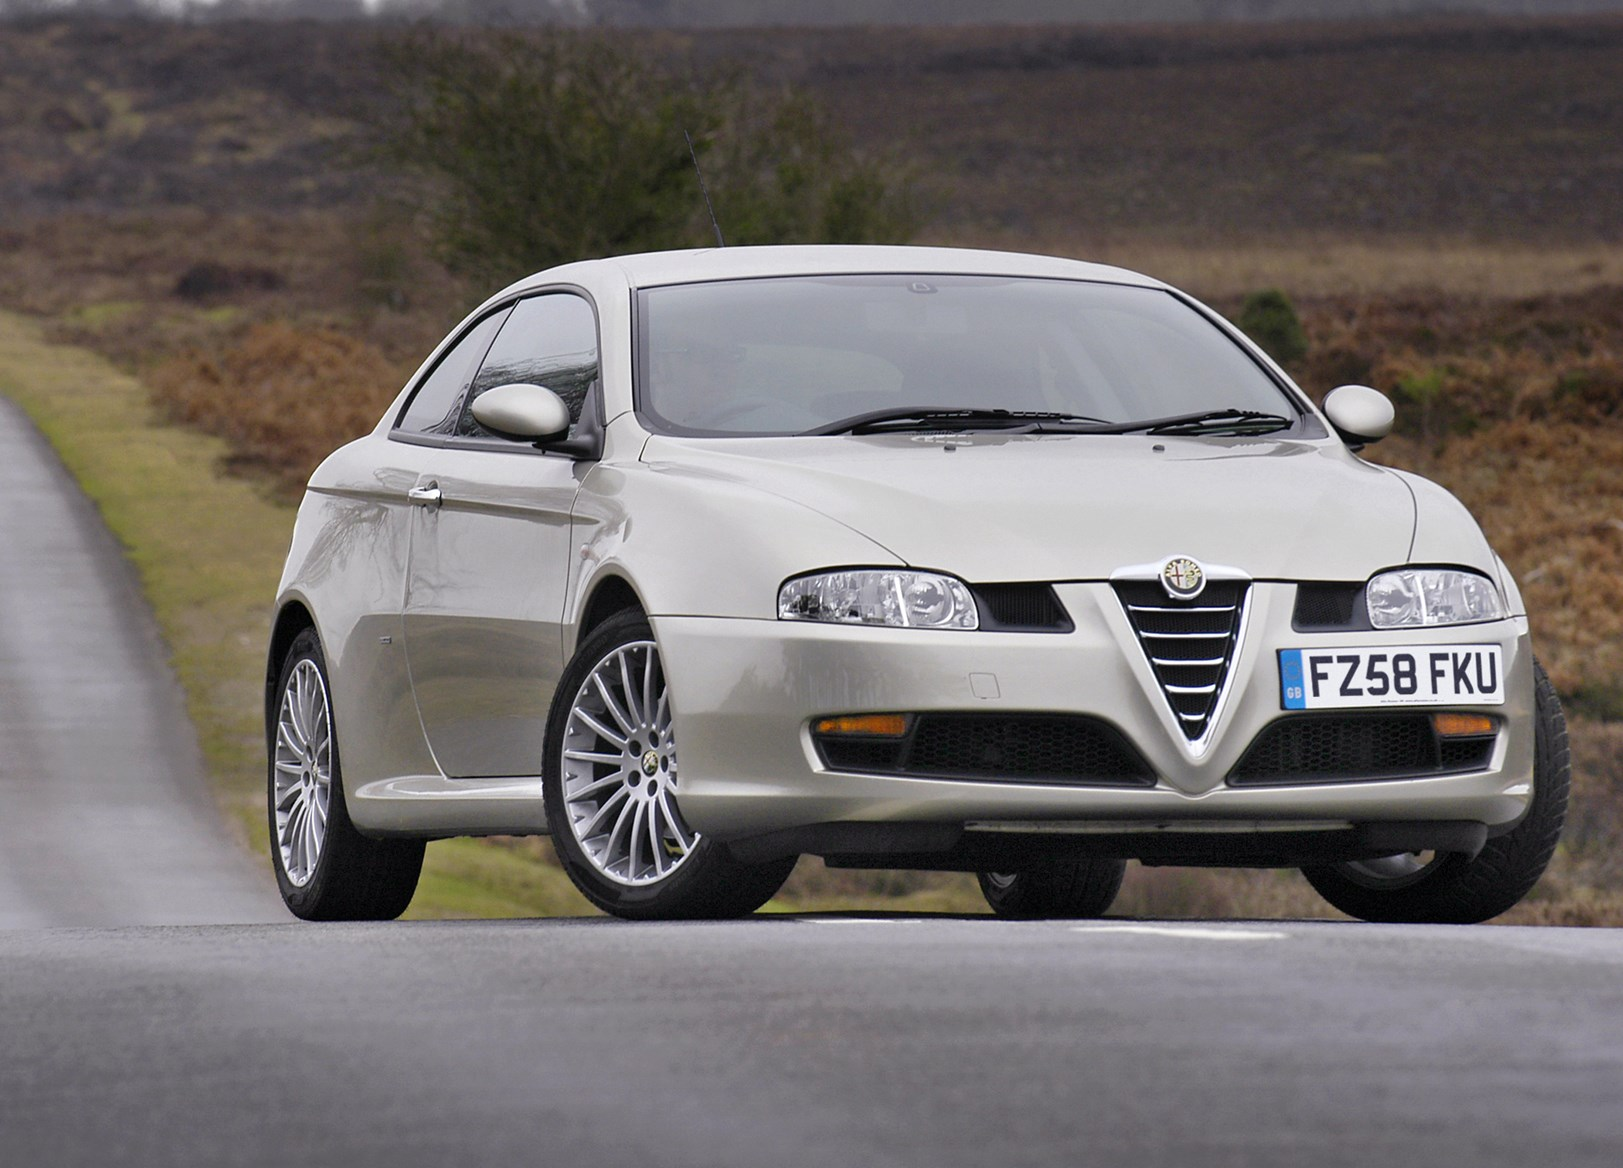 alfa romeo gt coupe 2004 2010 photos parkers. Black Bedroom Furniture Sets. Home Design Ideas